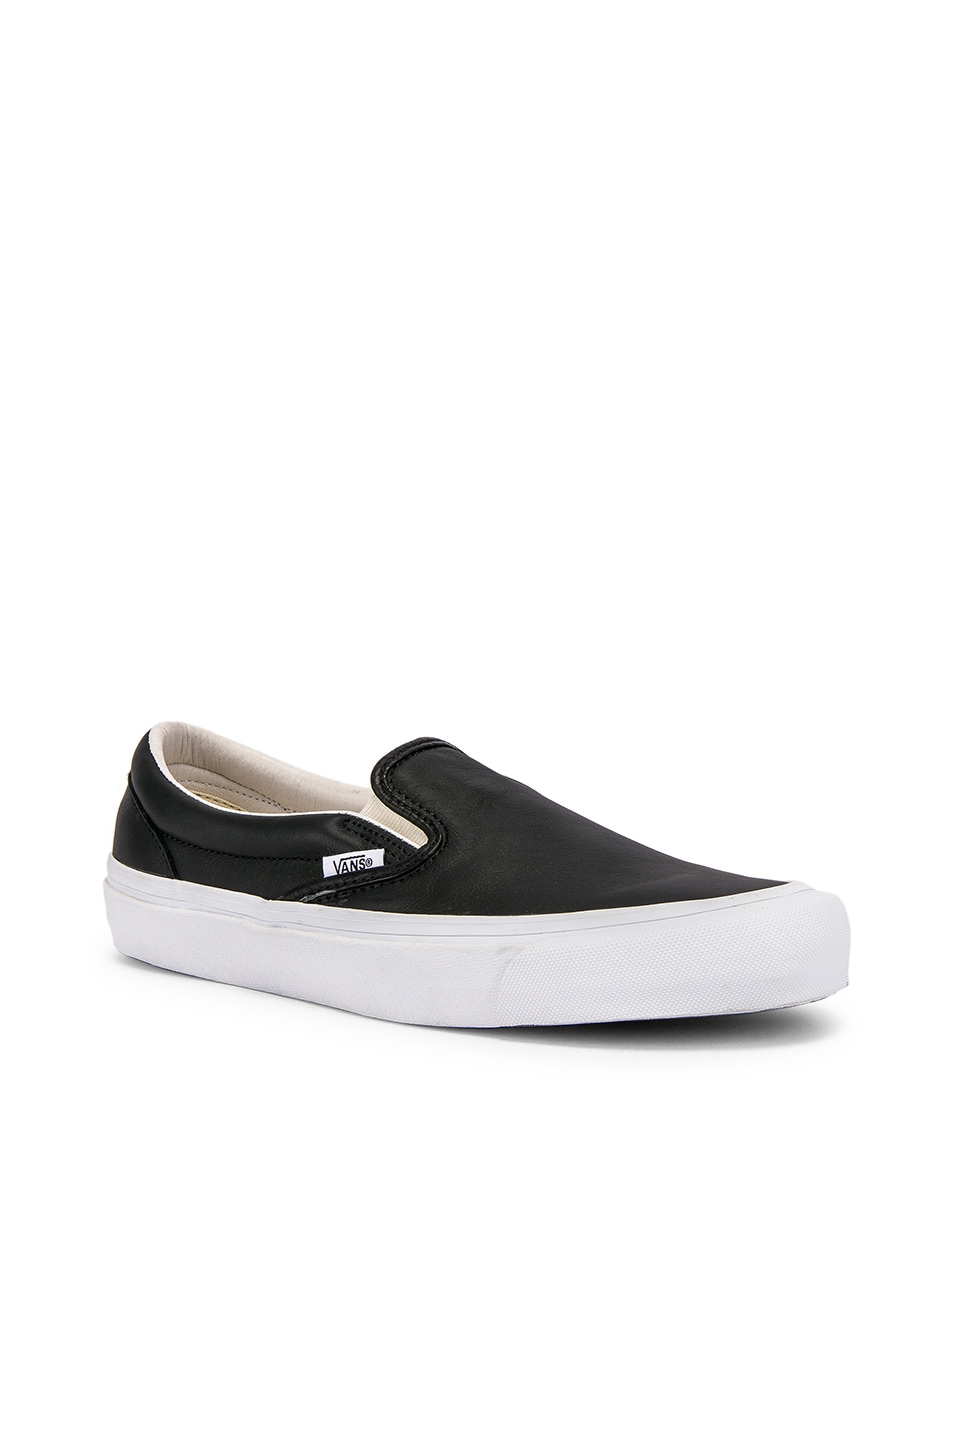 Image 1 of Vans Vault OG Classic Slip-On LX in Black